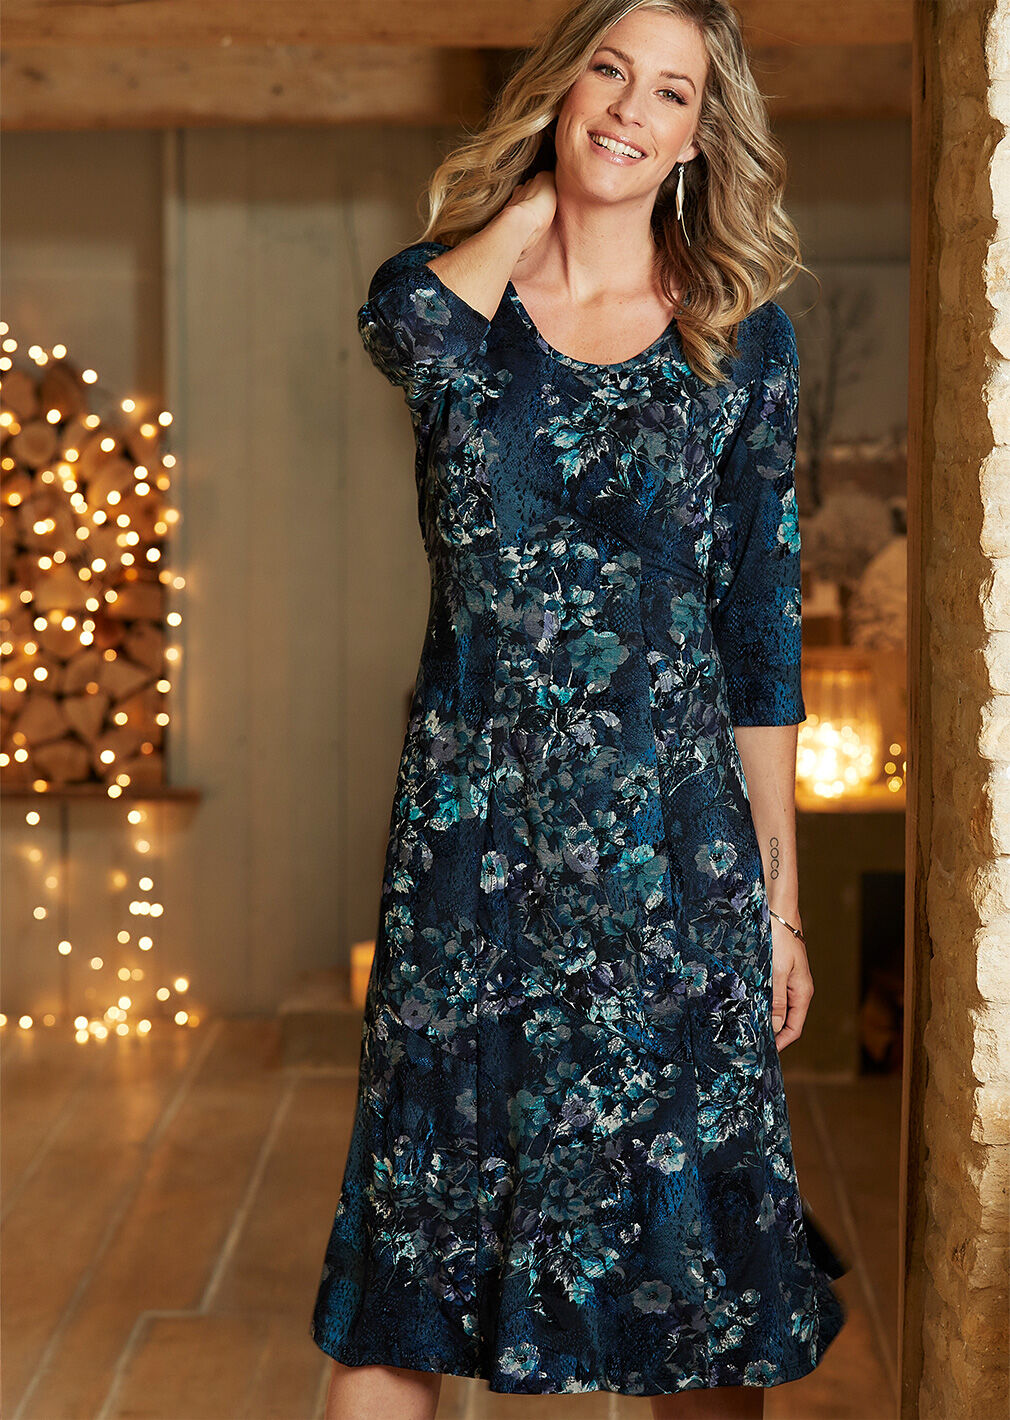 Partywear | Floral Flock Print Dress | By Cotton Traders